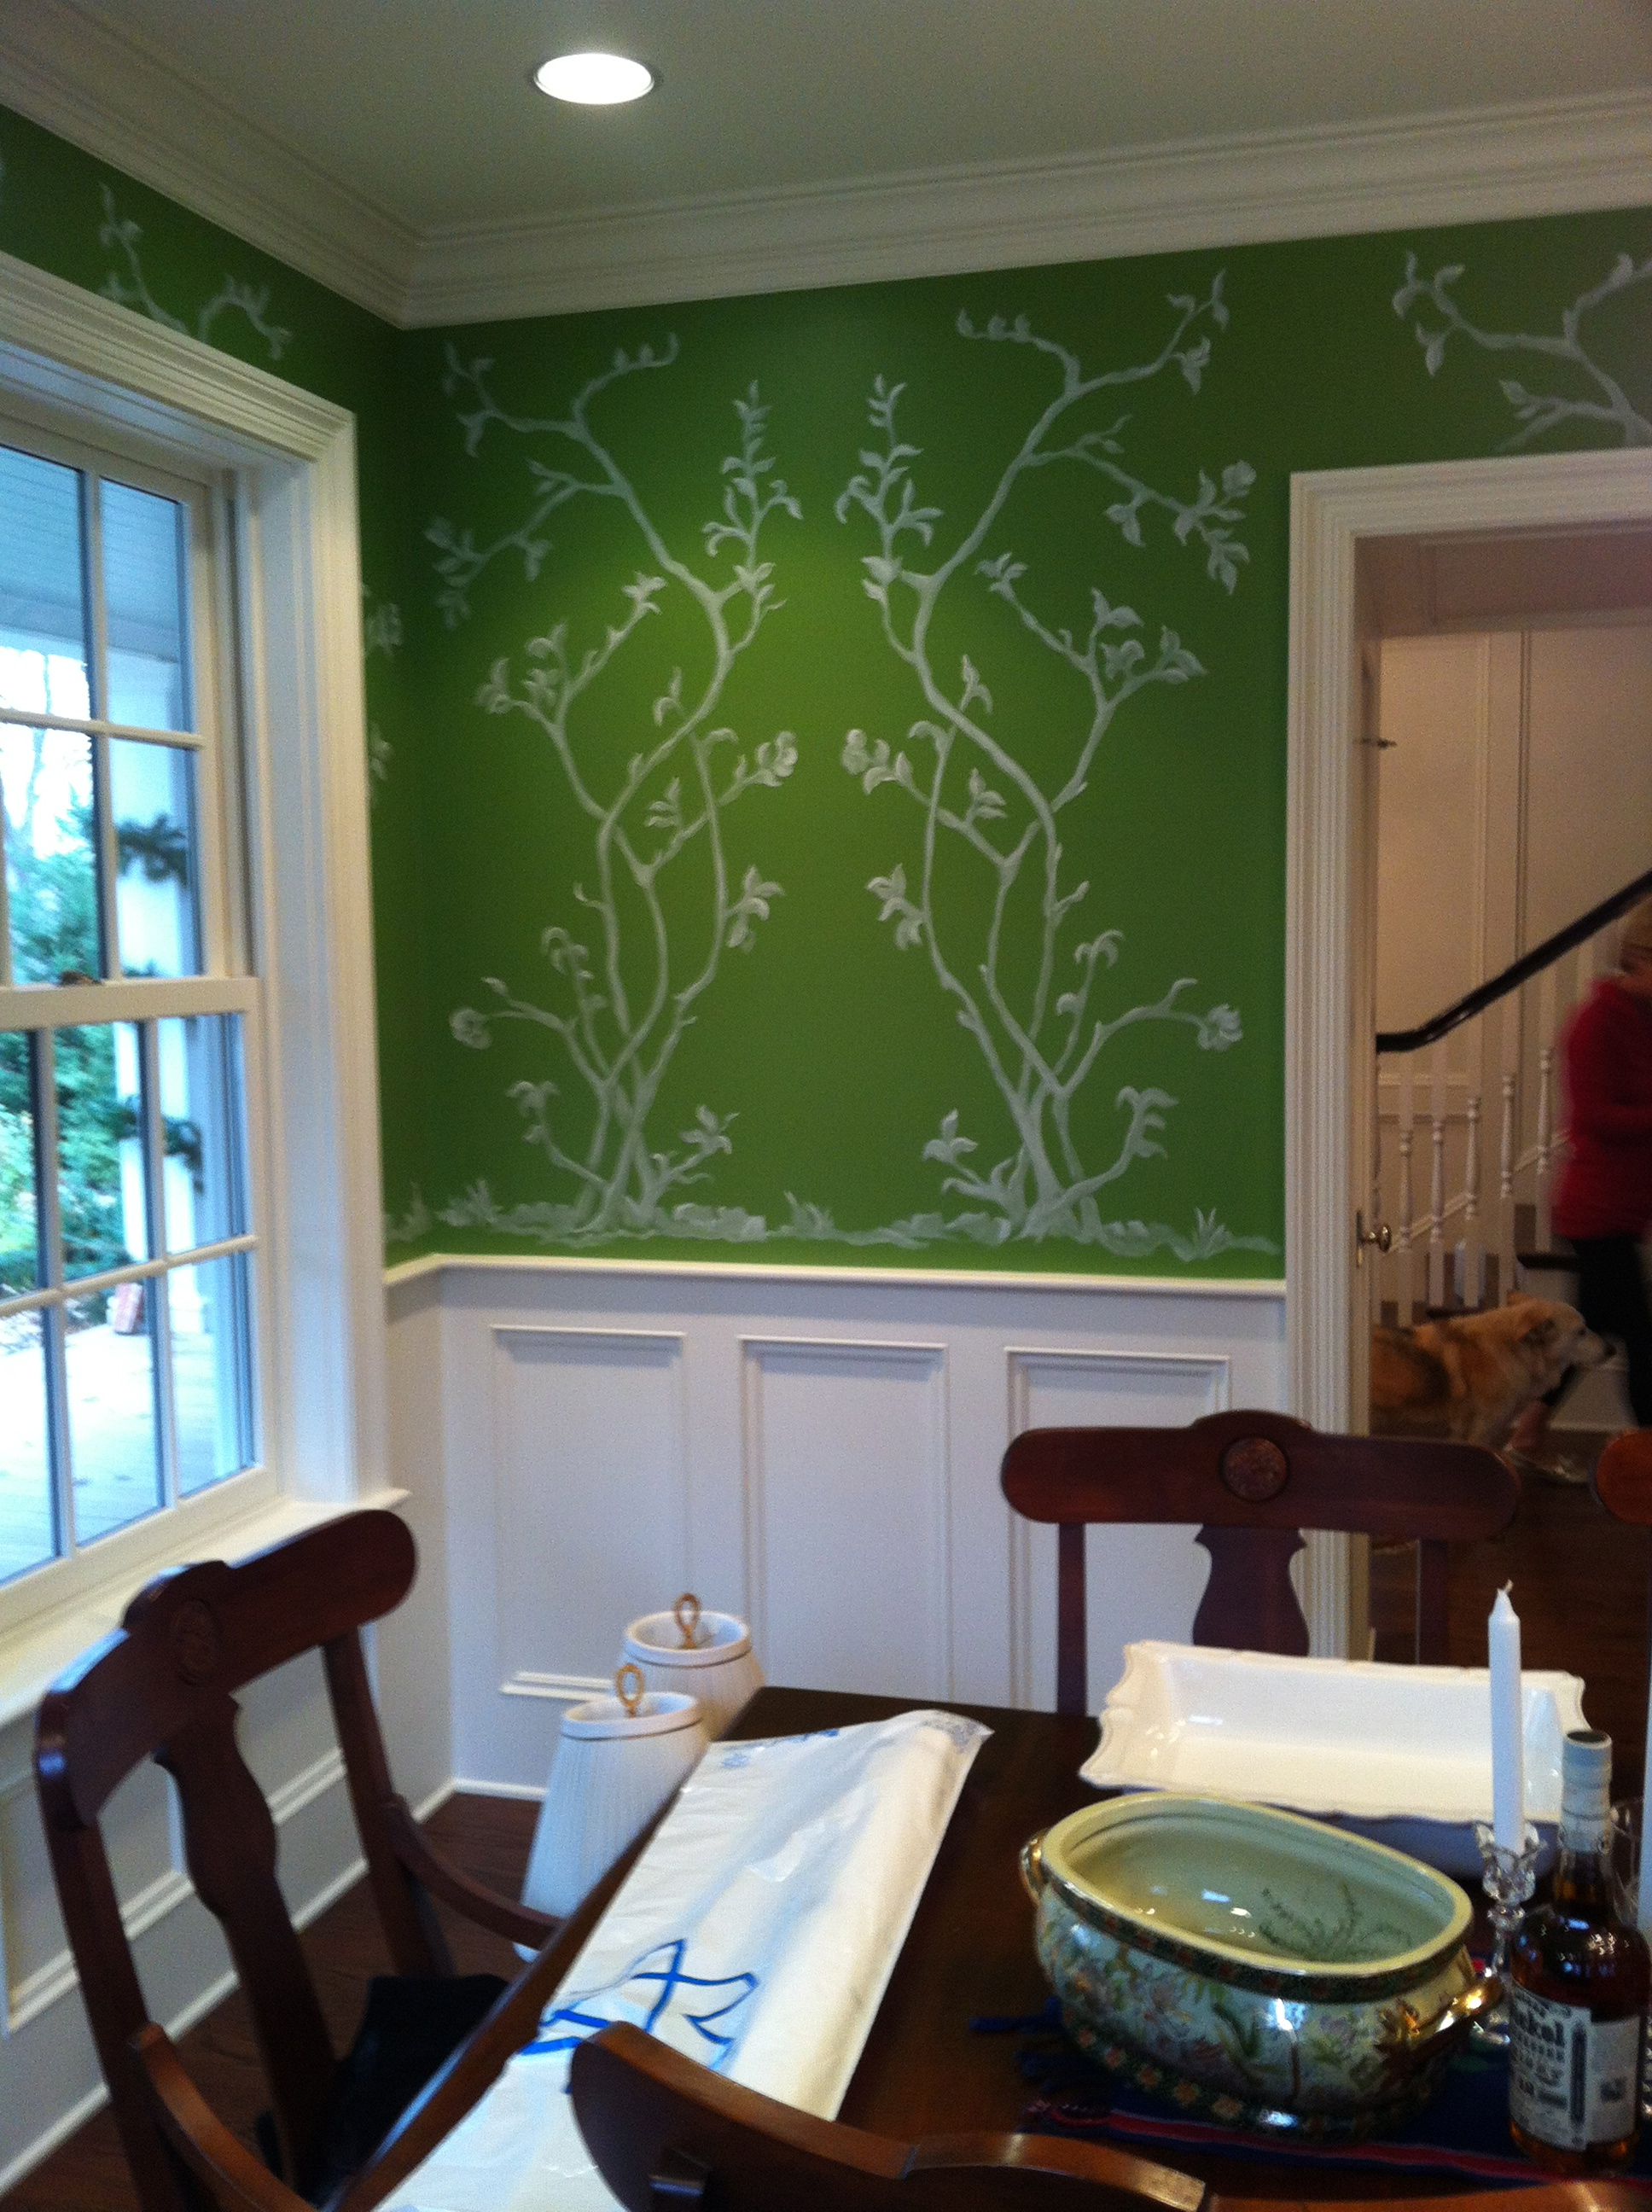 Custom designed and painted scene for dining room